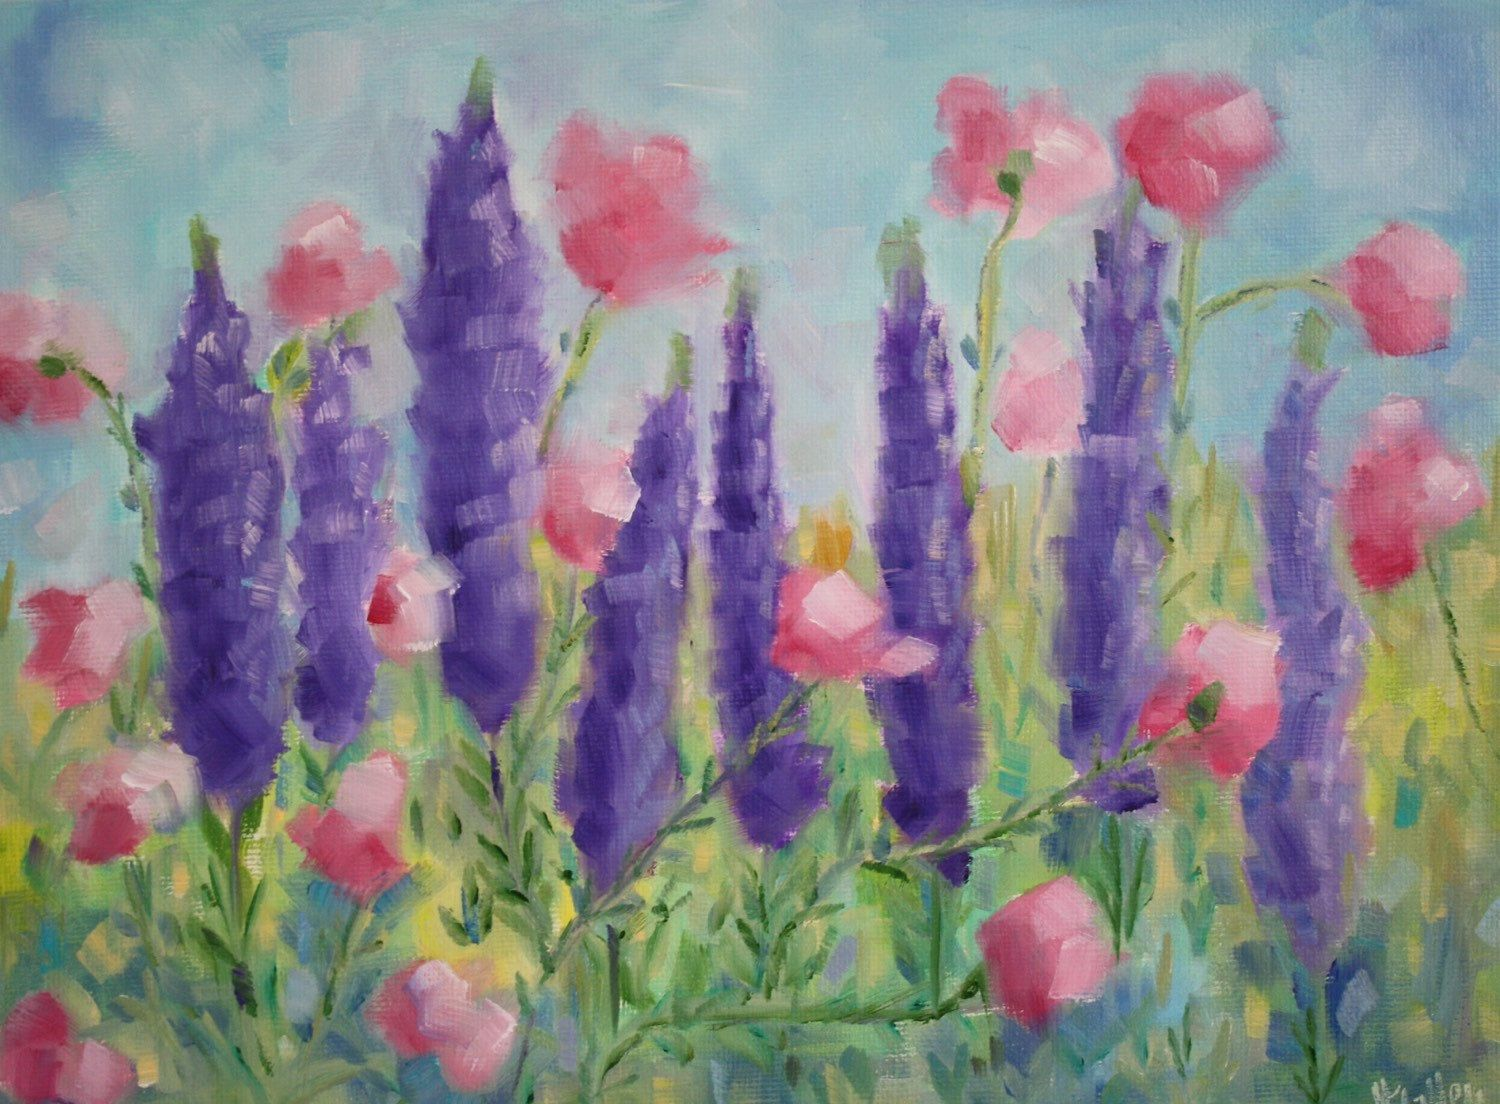 Original Oil Painting Wildflowers Lavender Floral Garden Painting Field Flowers Pink Green Purple F Original Oil Painting Oil Painting Original Oil